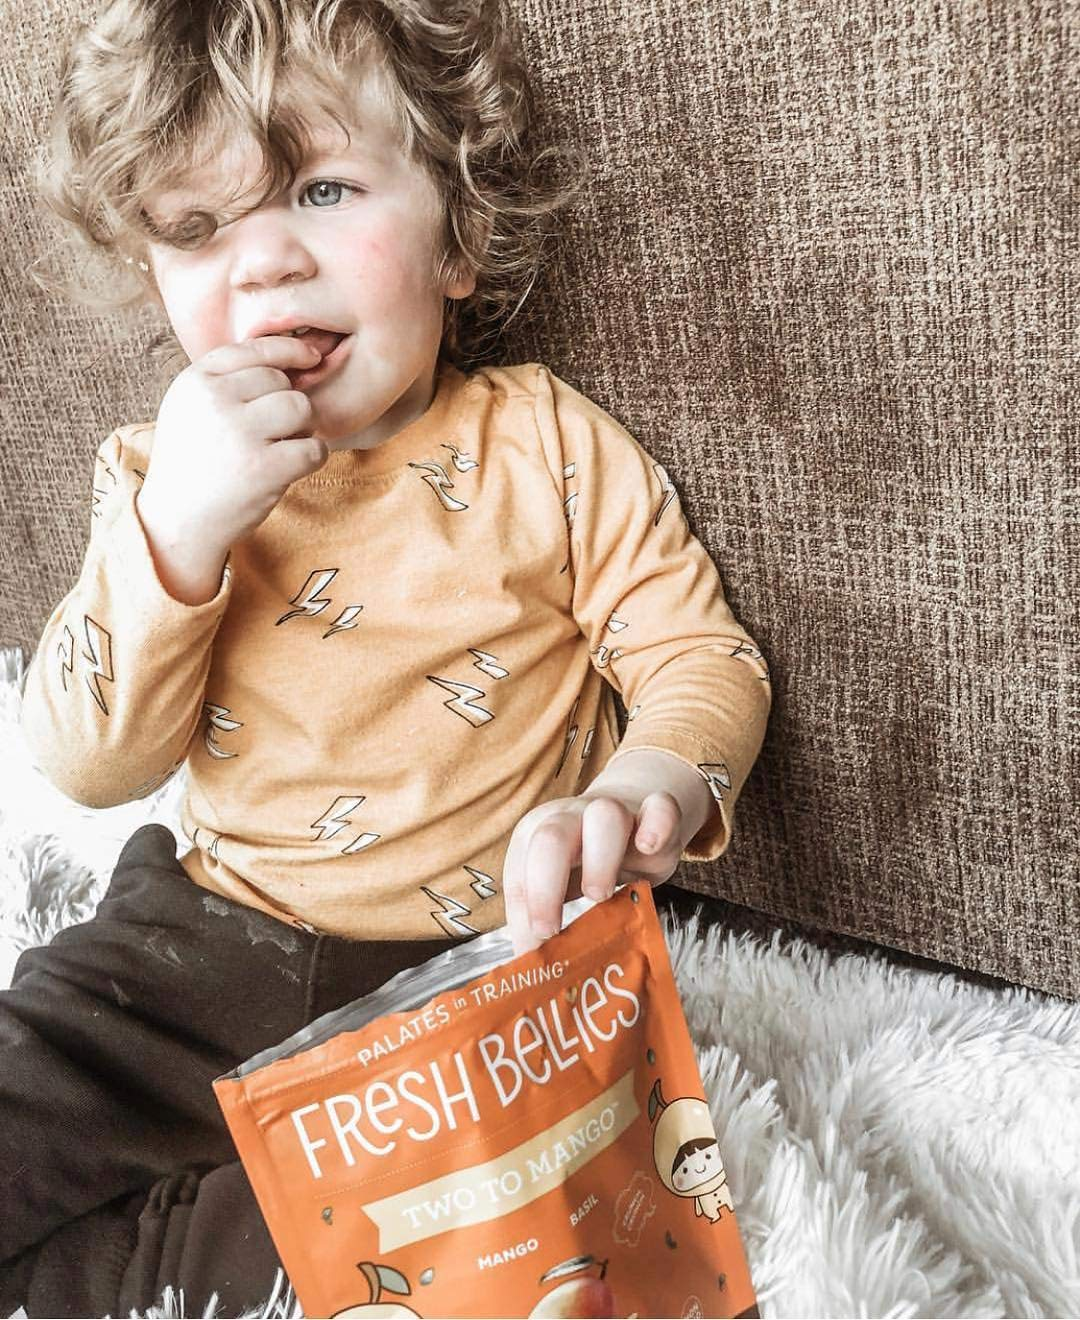 Fresh Bellies Vegan Snacks for Kids and Toddlers, No Added Sugars, Gluten Free, Paleo Friendly, Only 3 Ingredients, Non GMO, Kosher, 6 Pack - Two to Mango, 6 pack by Fresh Bellies